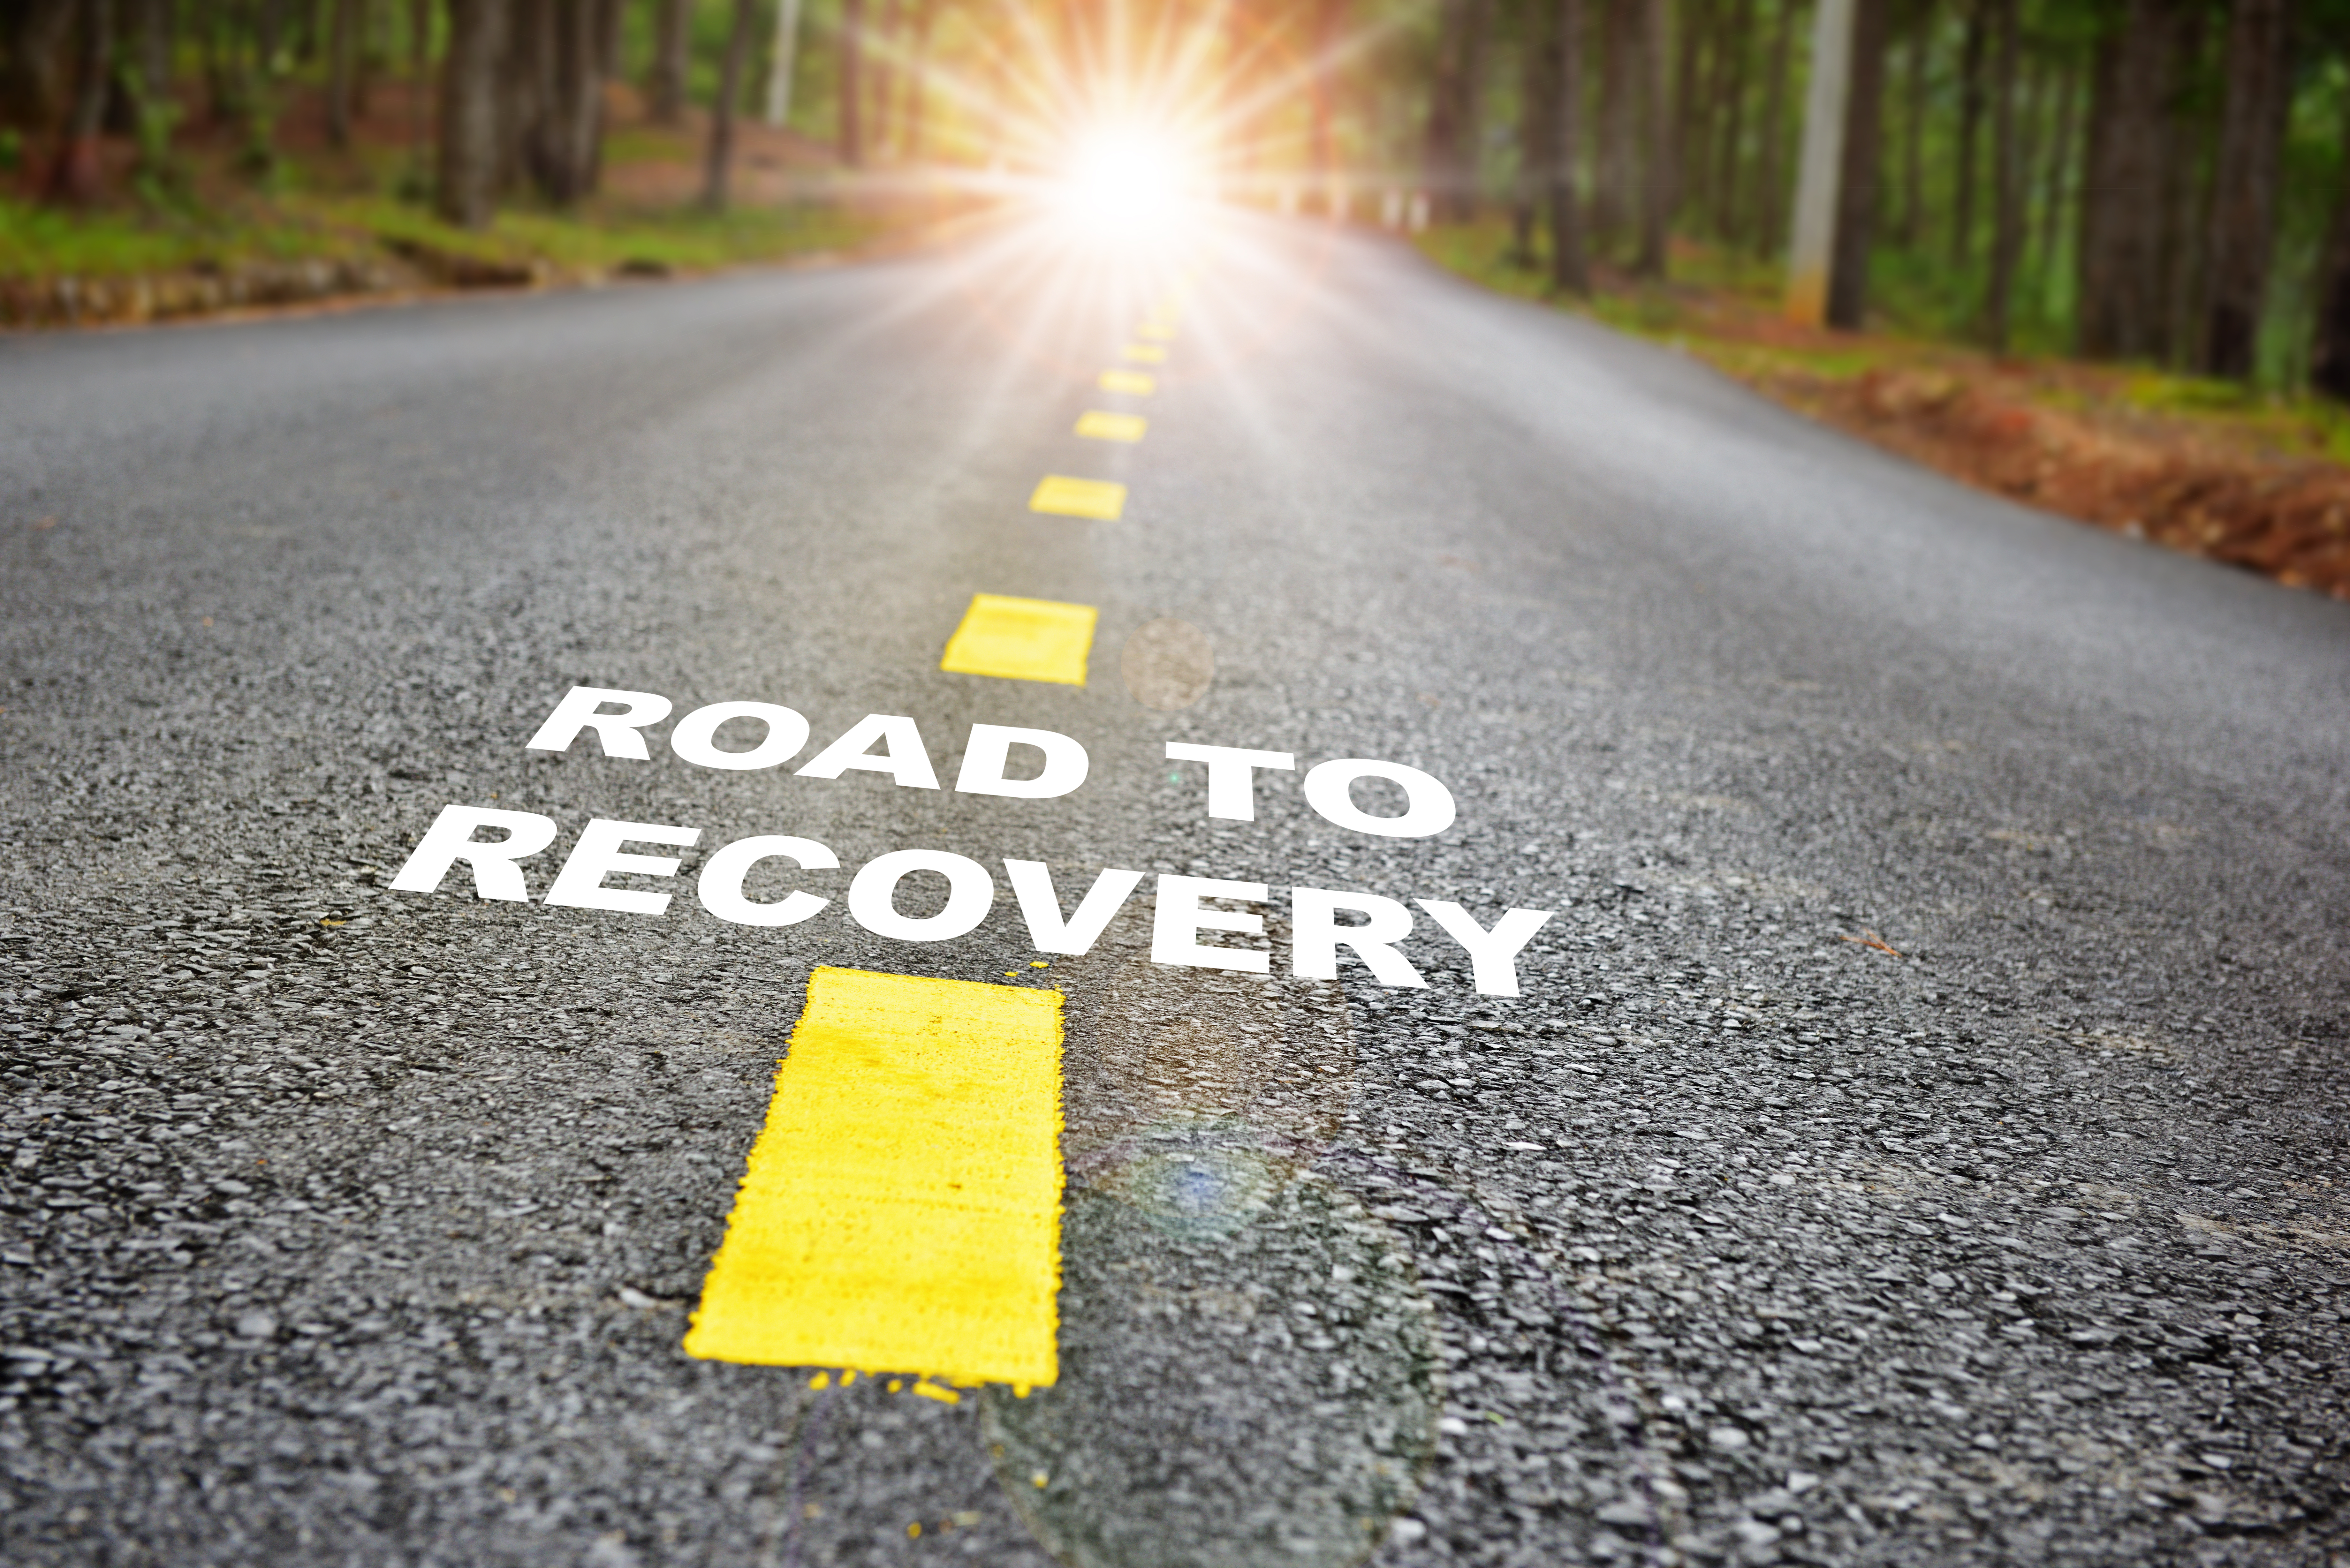 road to recovery on paved road and sunlight towards the end